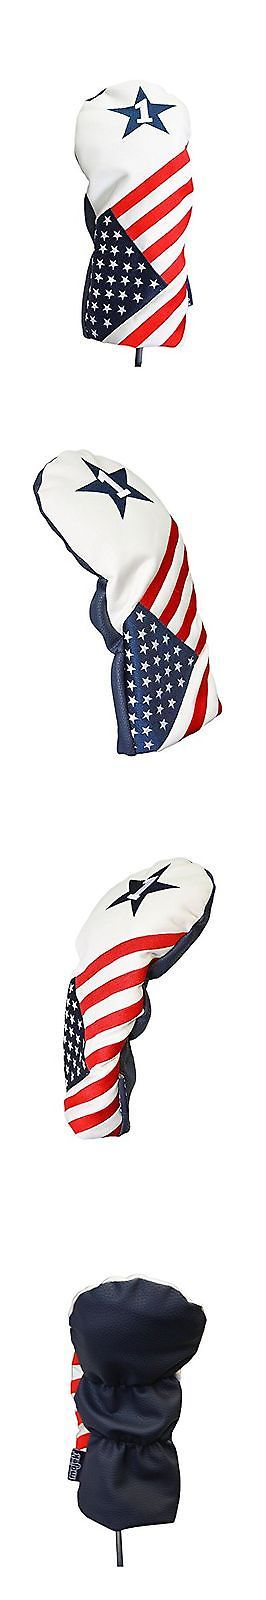 Club Head Covers 18930: Usa Patriot Golf 2016 Vintage Retro Patriotic Driver Headcover Head Cover Fit... -> BUY IT NOW ONLY: $30.47 on eBay!